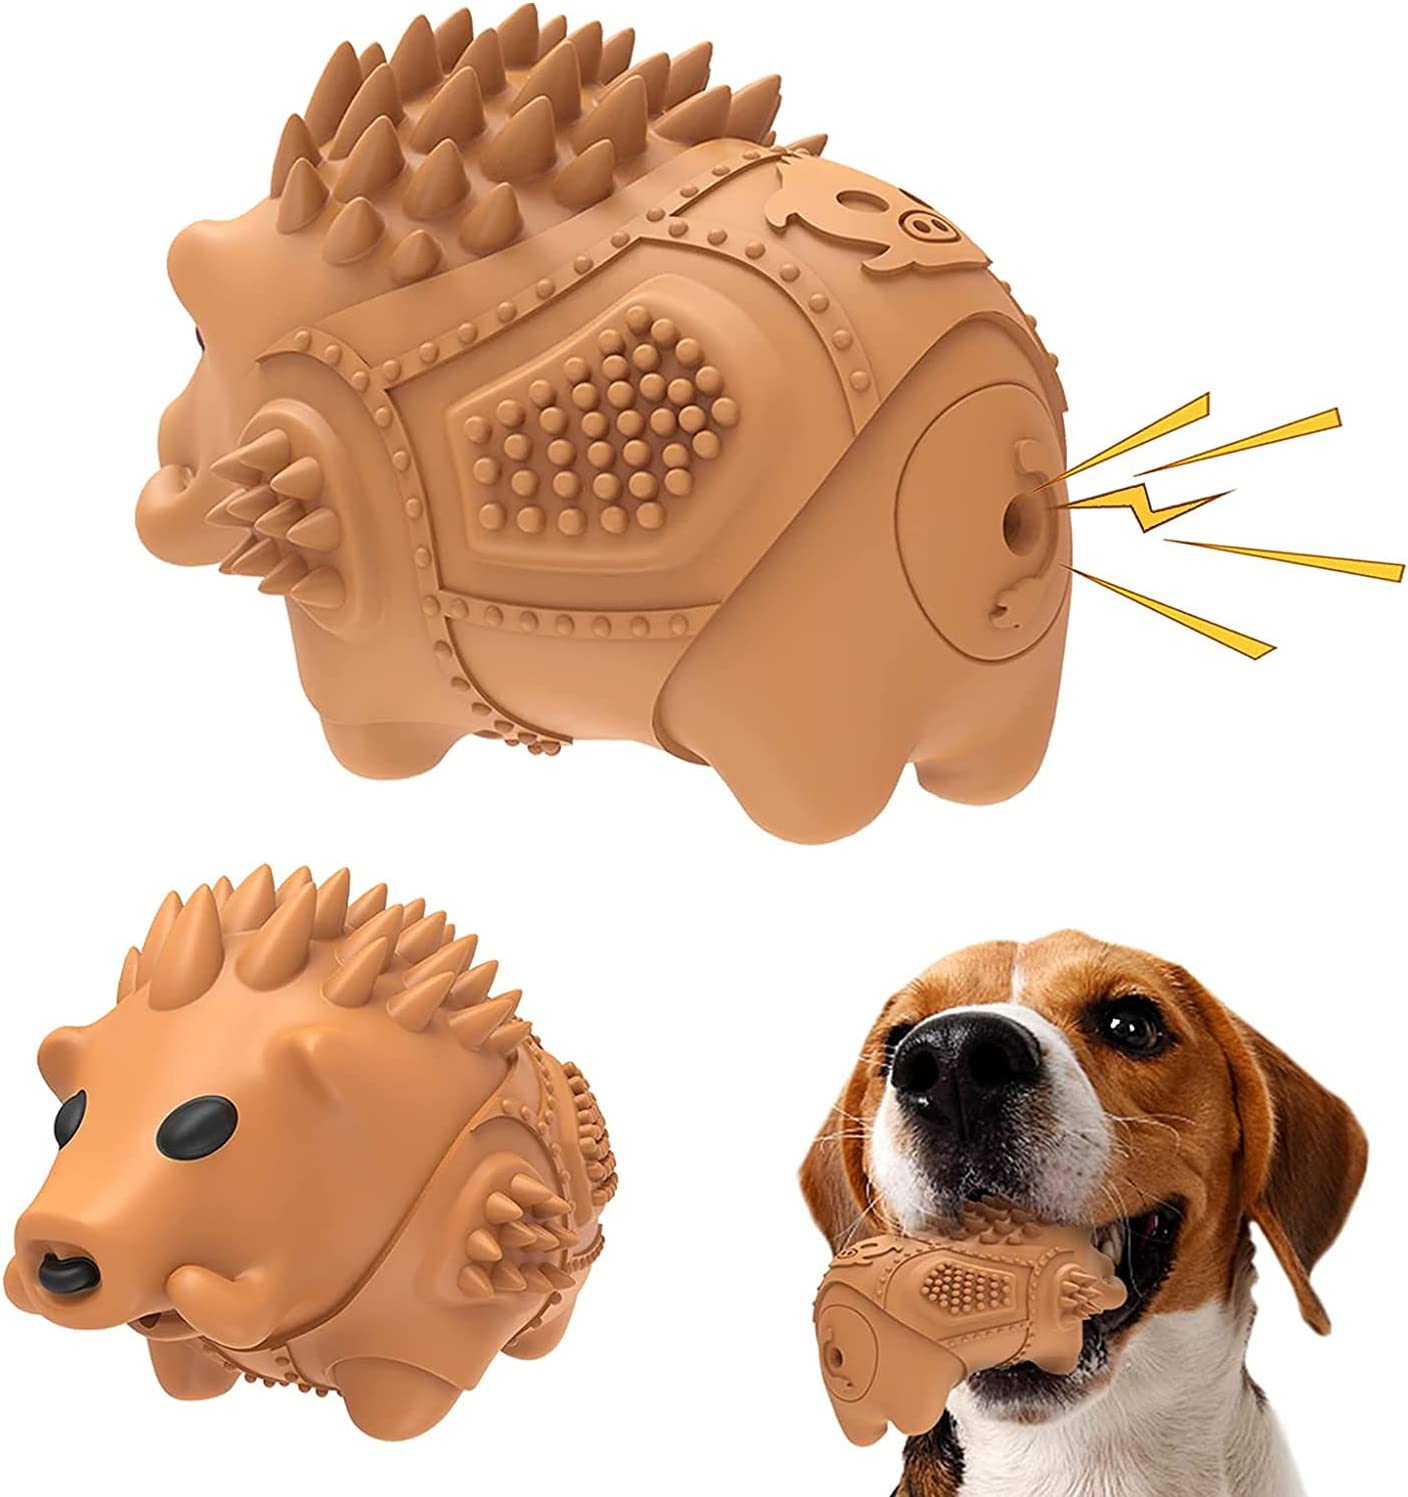 Magust Max 64% OFF Dog Toy for Large Chews che San Francisco Mall Aggressive Dogs Durable